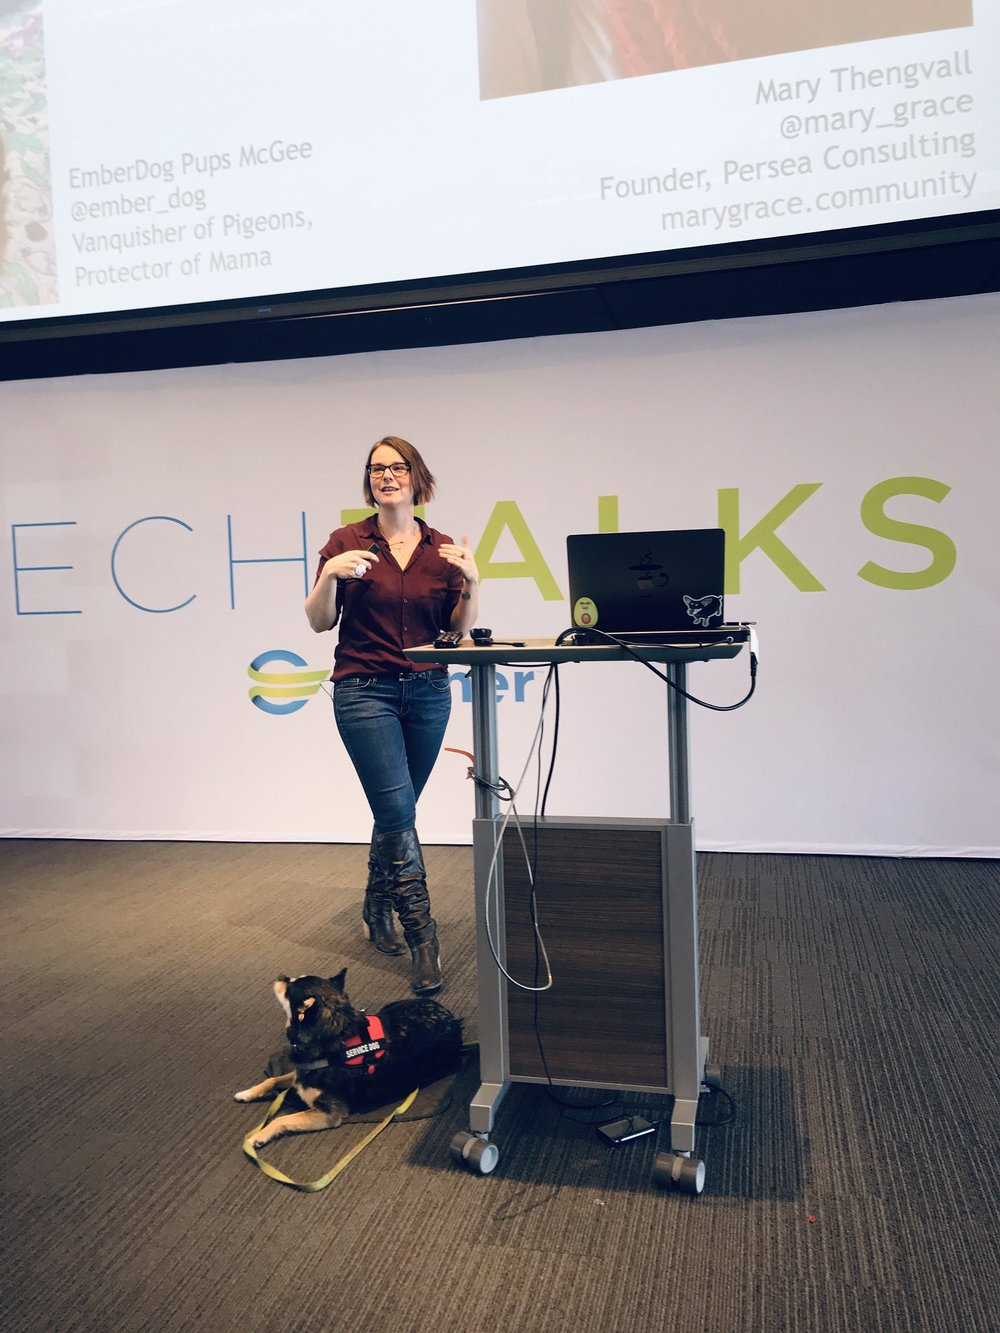 Speaking - From podcasts to panels and speaking at conferences, I love to speak about building, growing, and advocating for technical communities. I also have the privilege of speaking on behalf of MHPrompt, an organization that starts conversations about mental health in tech.Interested in having me speak at your event? Feel free to reach out.Want to see videos or slides from past presentations? Check out my Notist profile.